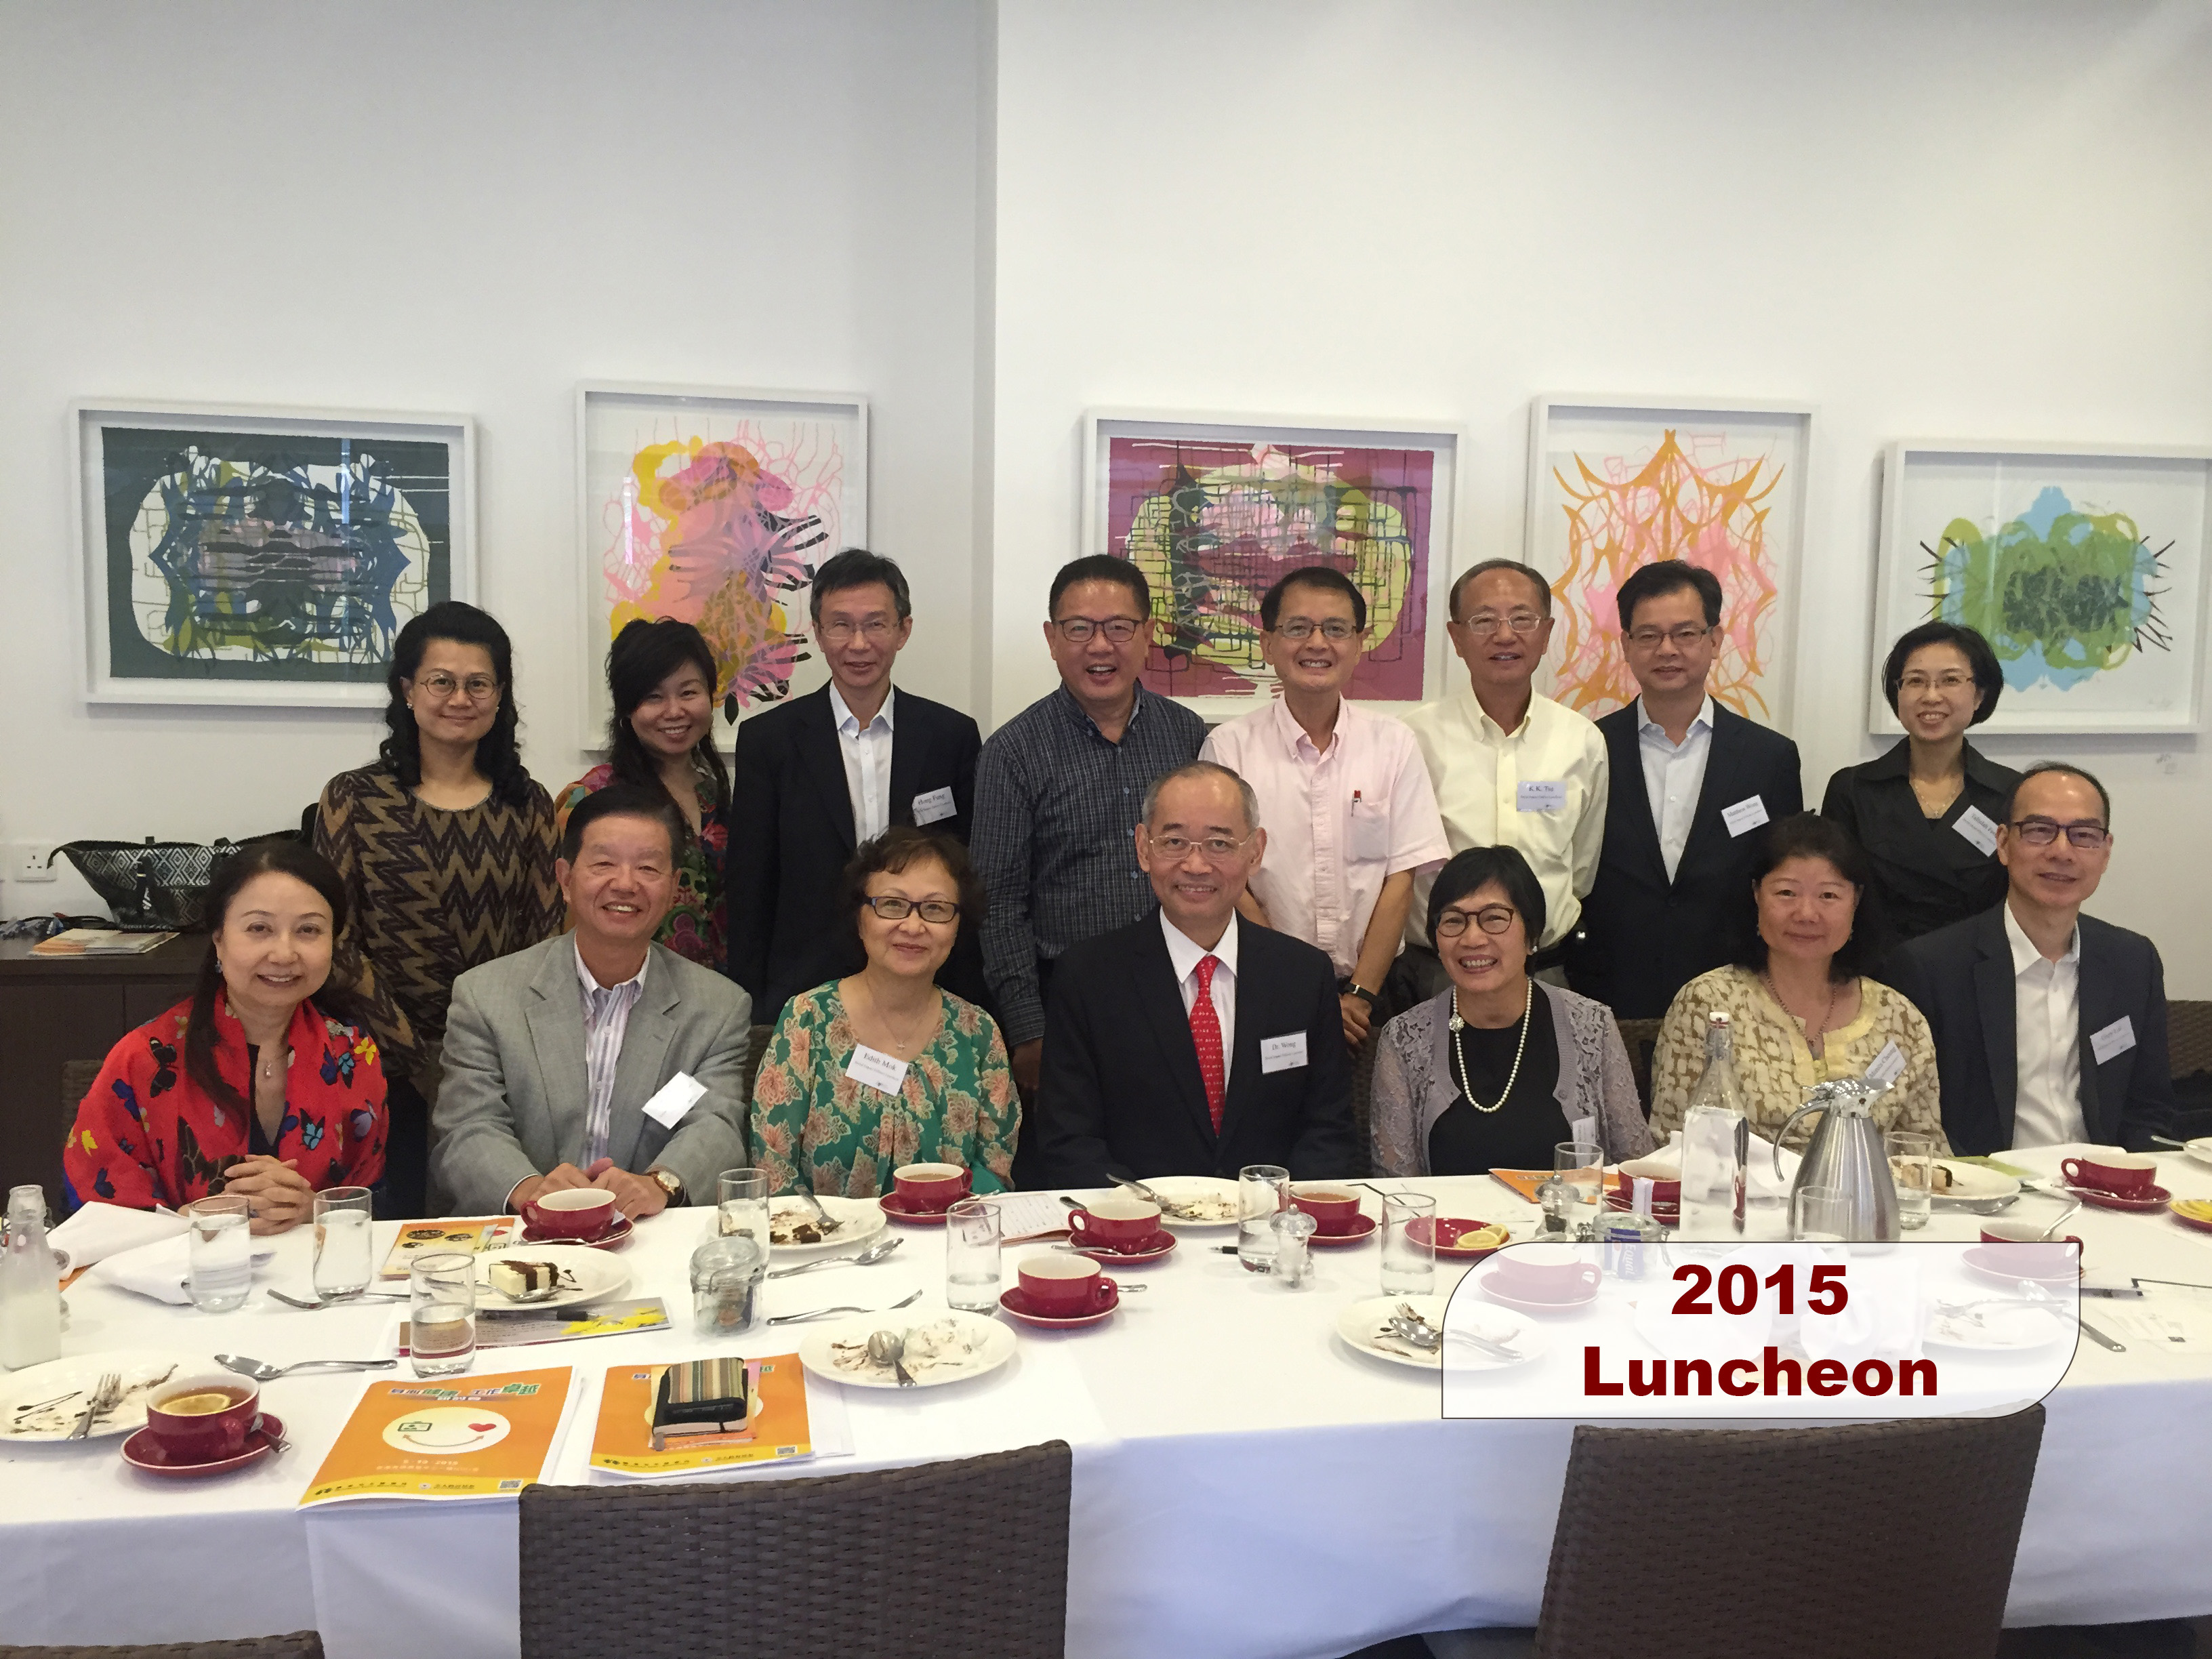 (2015 Luncheon)edited